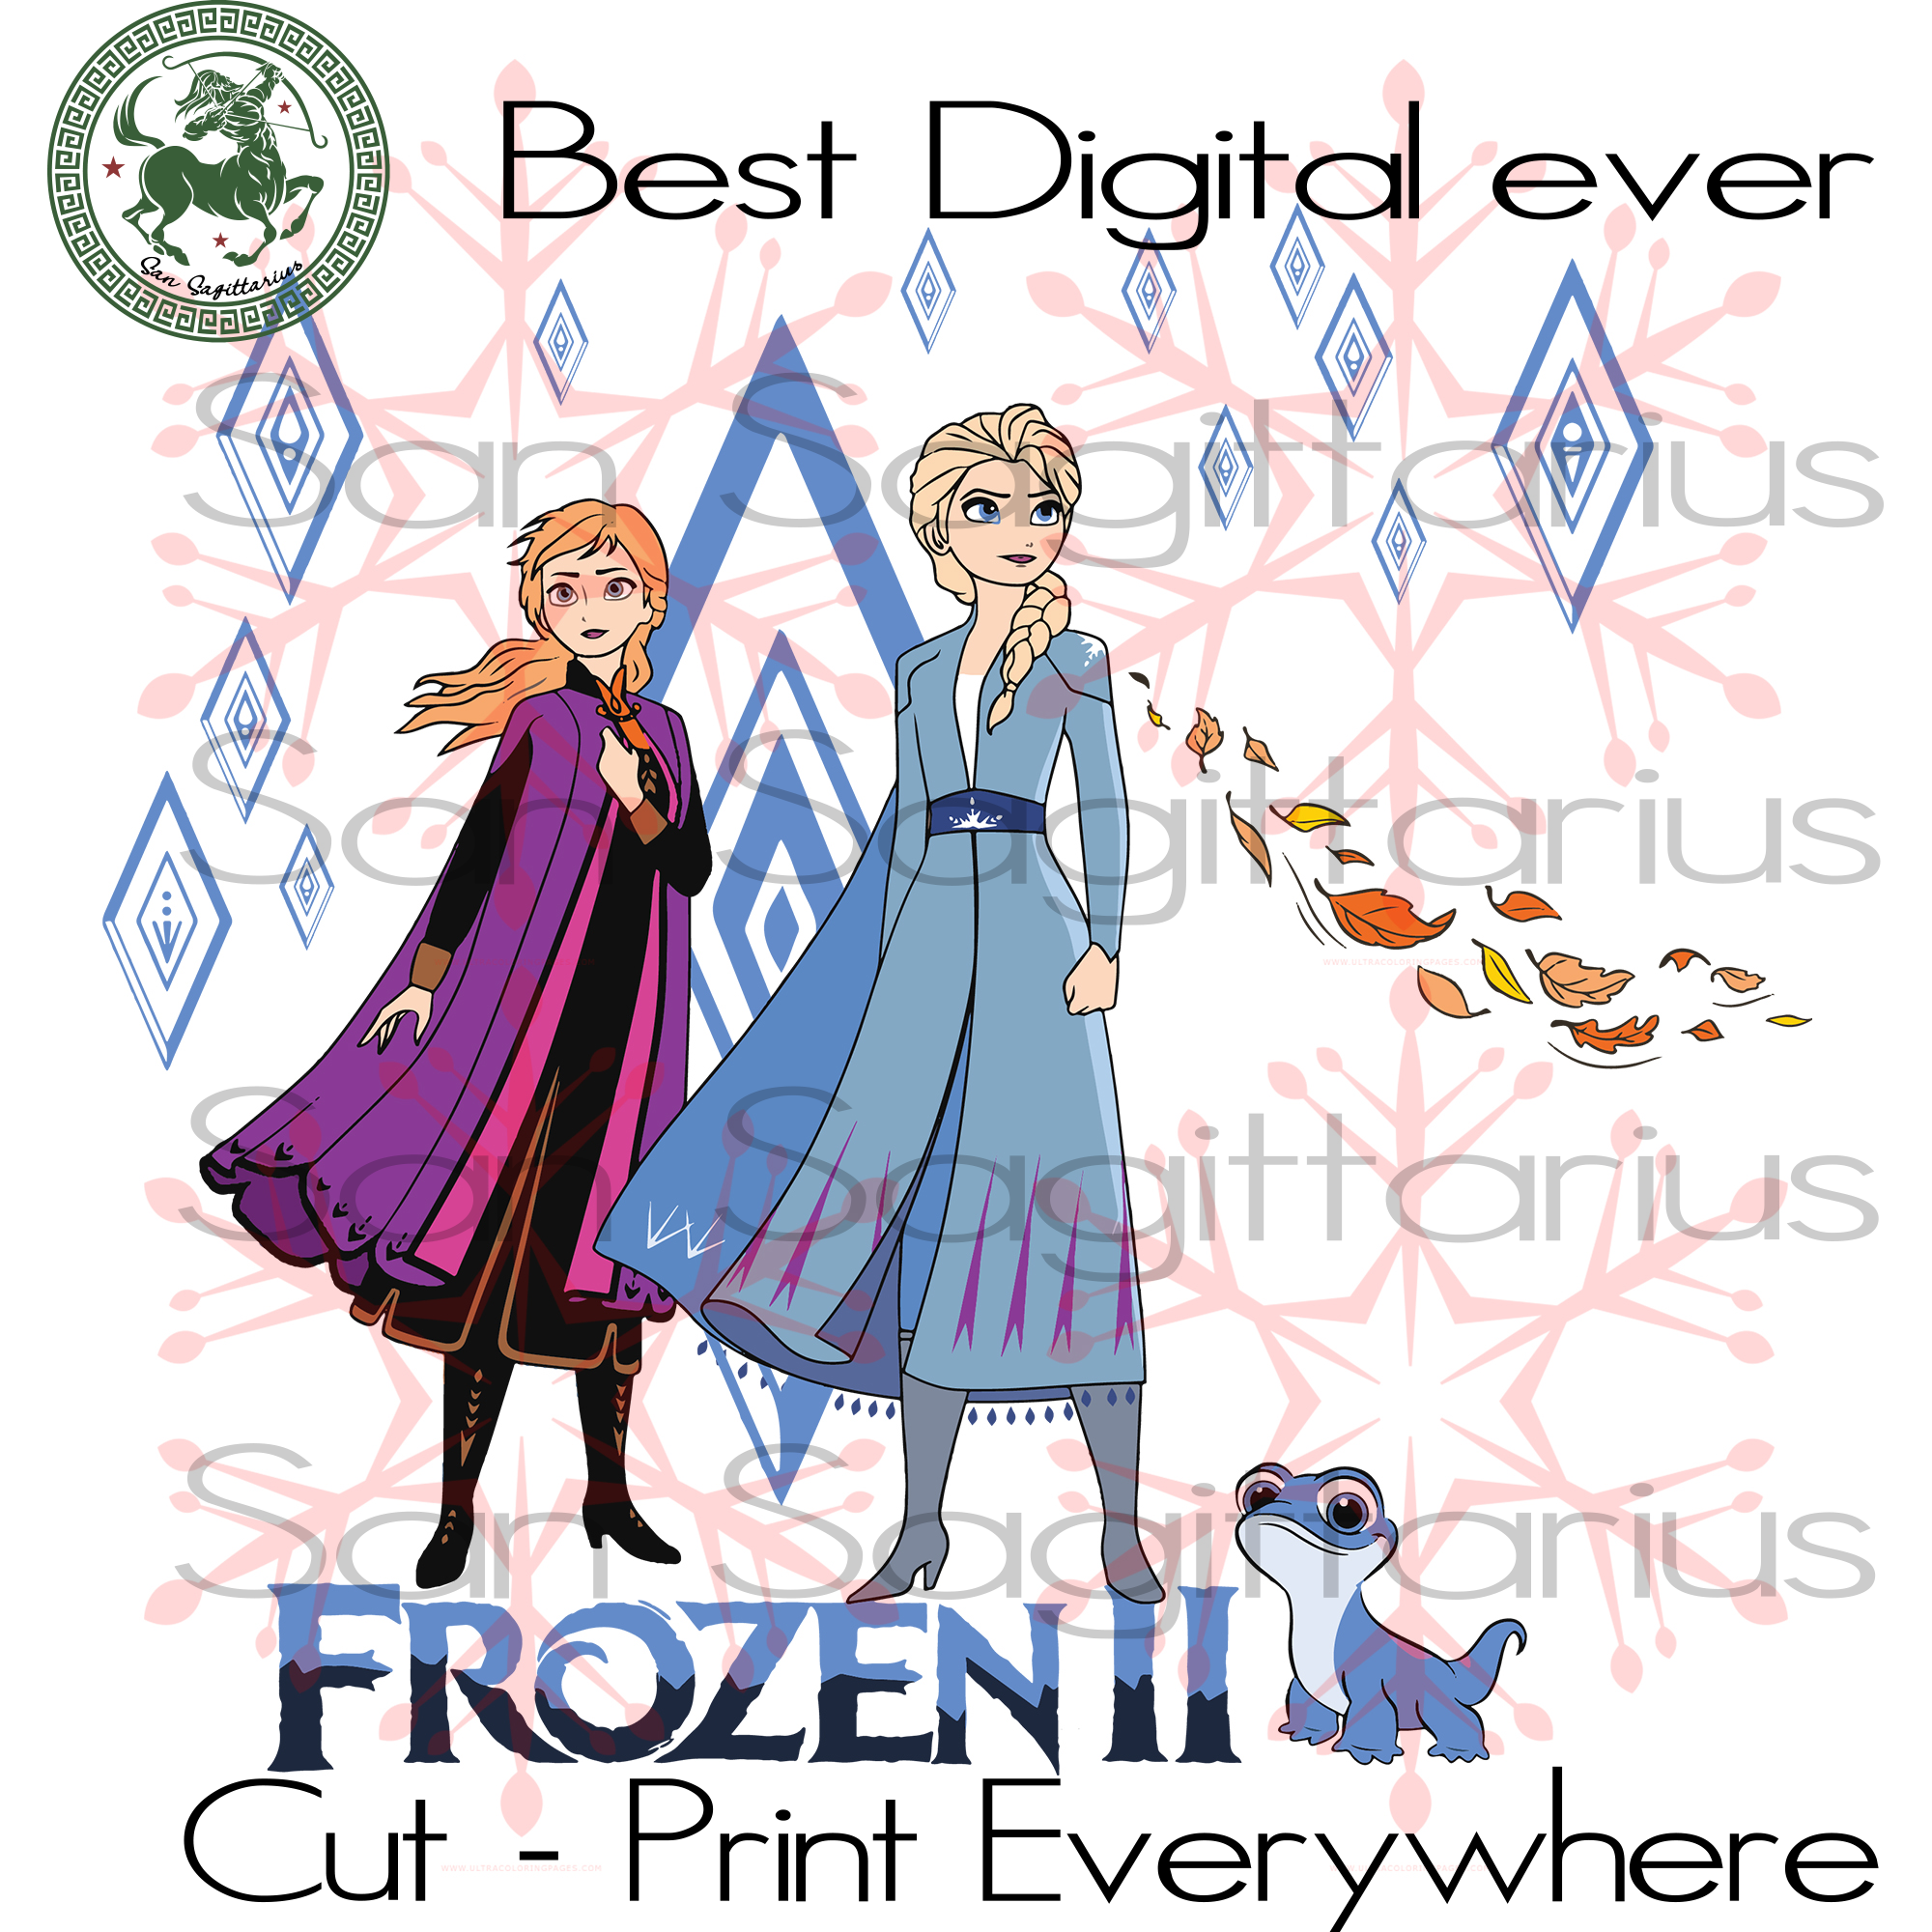 Frozen Queen Elsa, Frozen Queen Elsa Custom, Elsa Svg, Elsa Vector, Elsa Clipart, Elsa Shirt, Elsa Cut File, Elsa Frozen, Elsa Crown Svg, Elsa Silhouette Svg, Elsa Svg Files For Cricut, Elsa